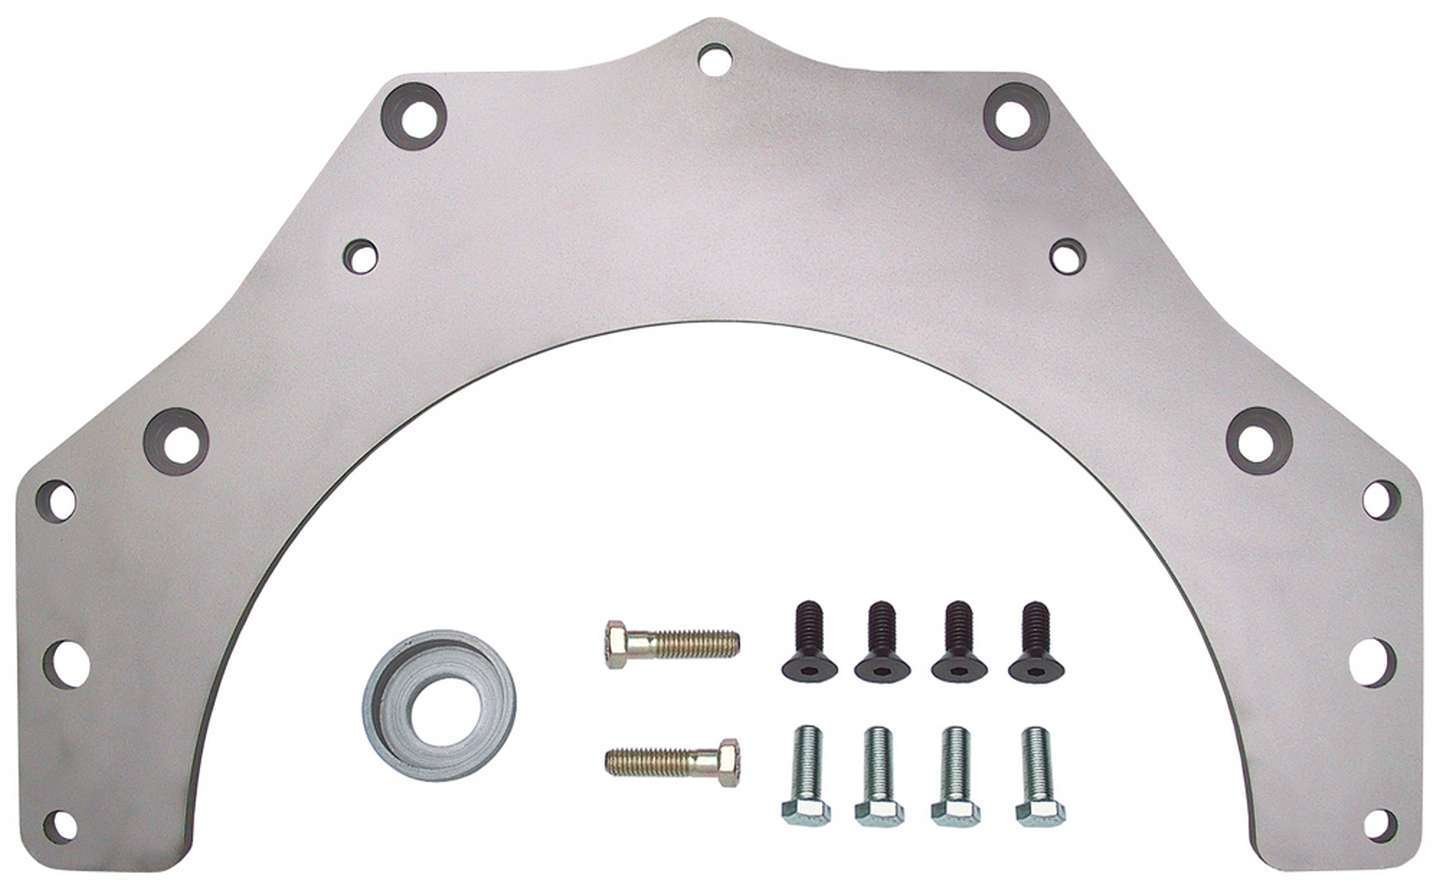 Trans Dapt 0061 Transmission Adapter, Steel, Natural, Chevy 700R4 / TH350 / TH400 to BOP V8, Kit